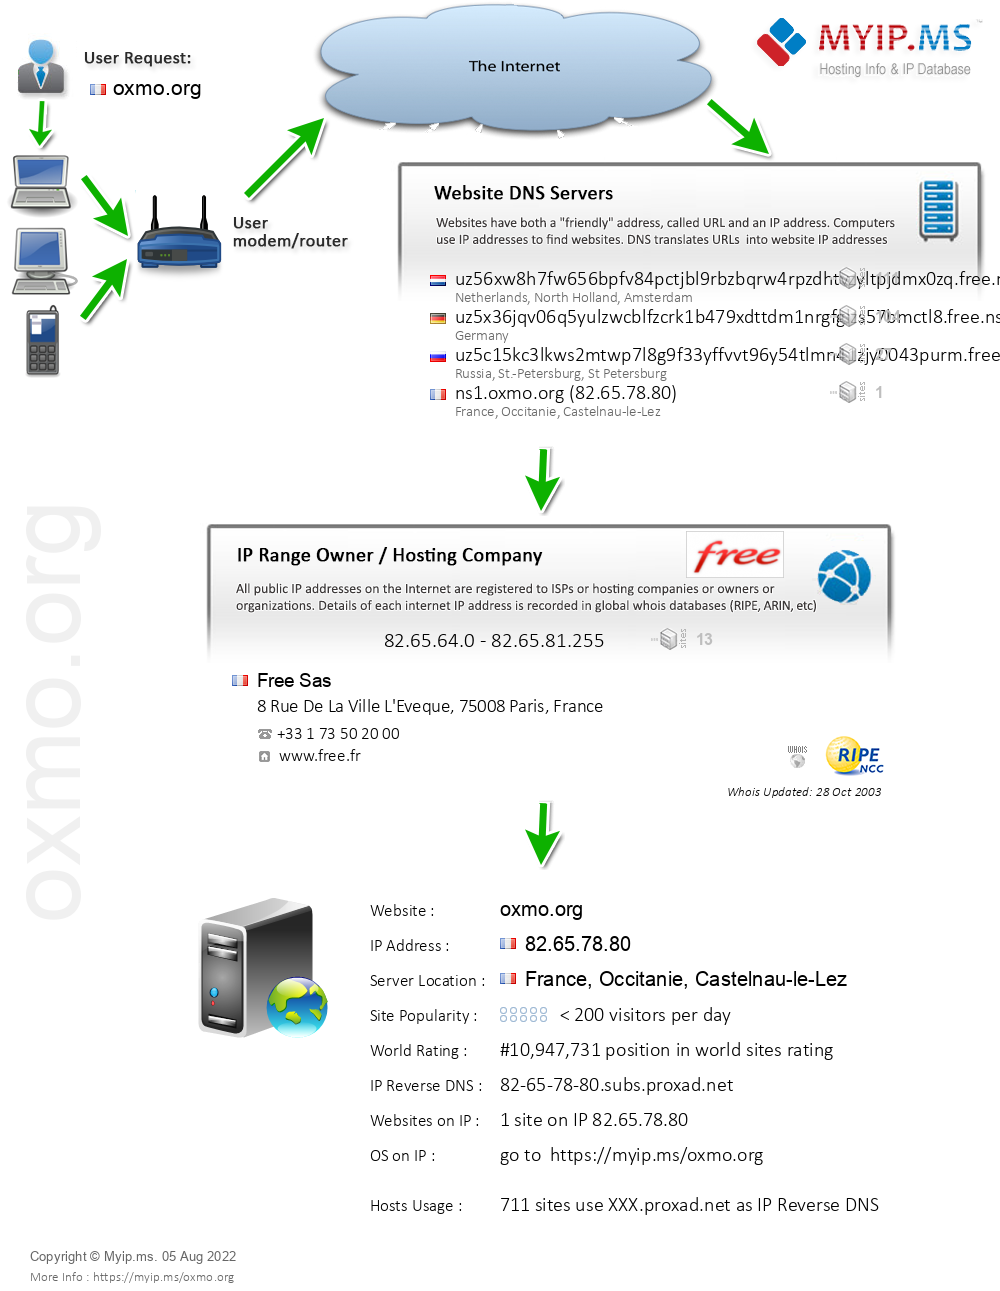 Oxmo.org - Website Hosting Visual IP Diagram